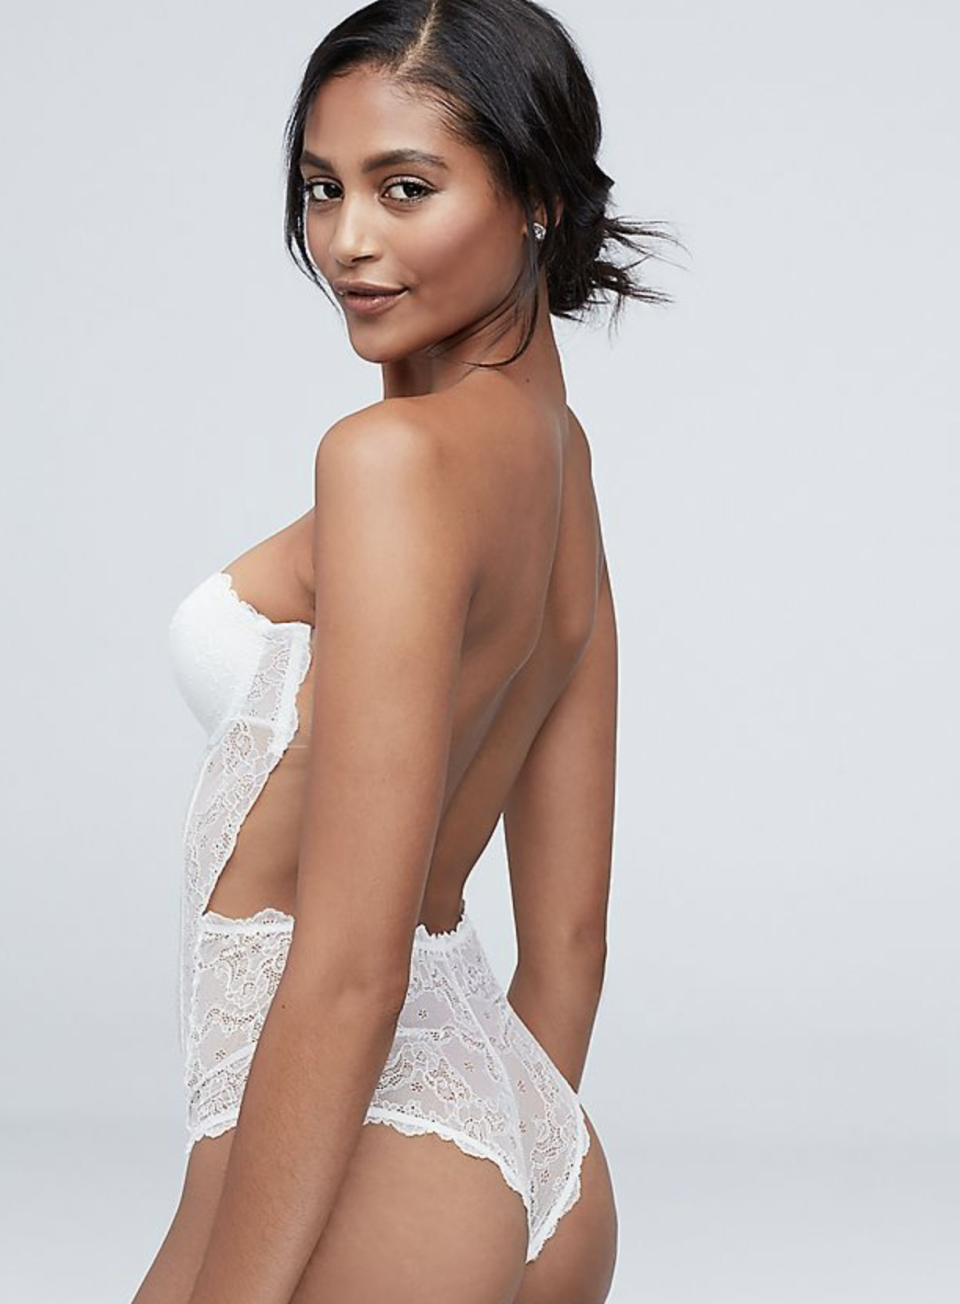 a model wearing a backless strapless lace bodysuit for underneath a wedding dress